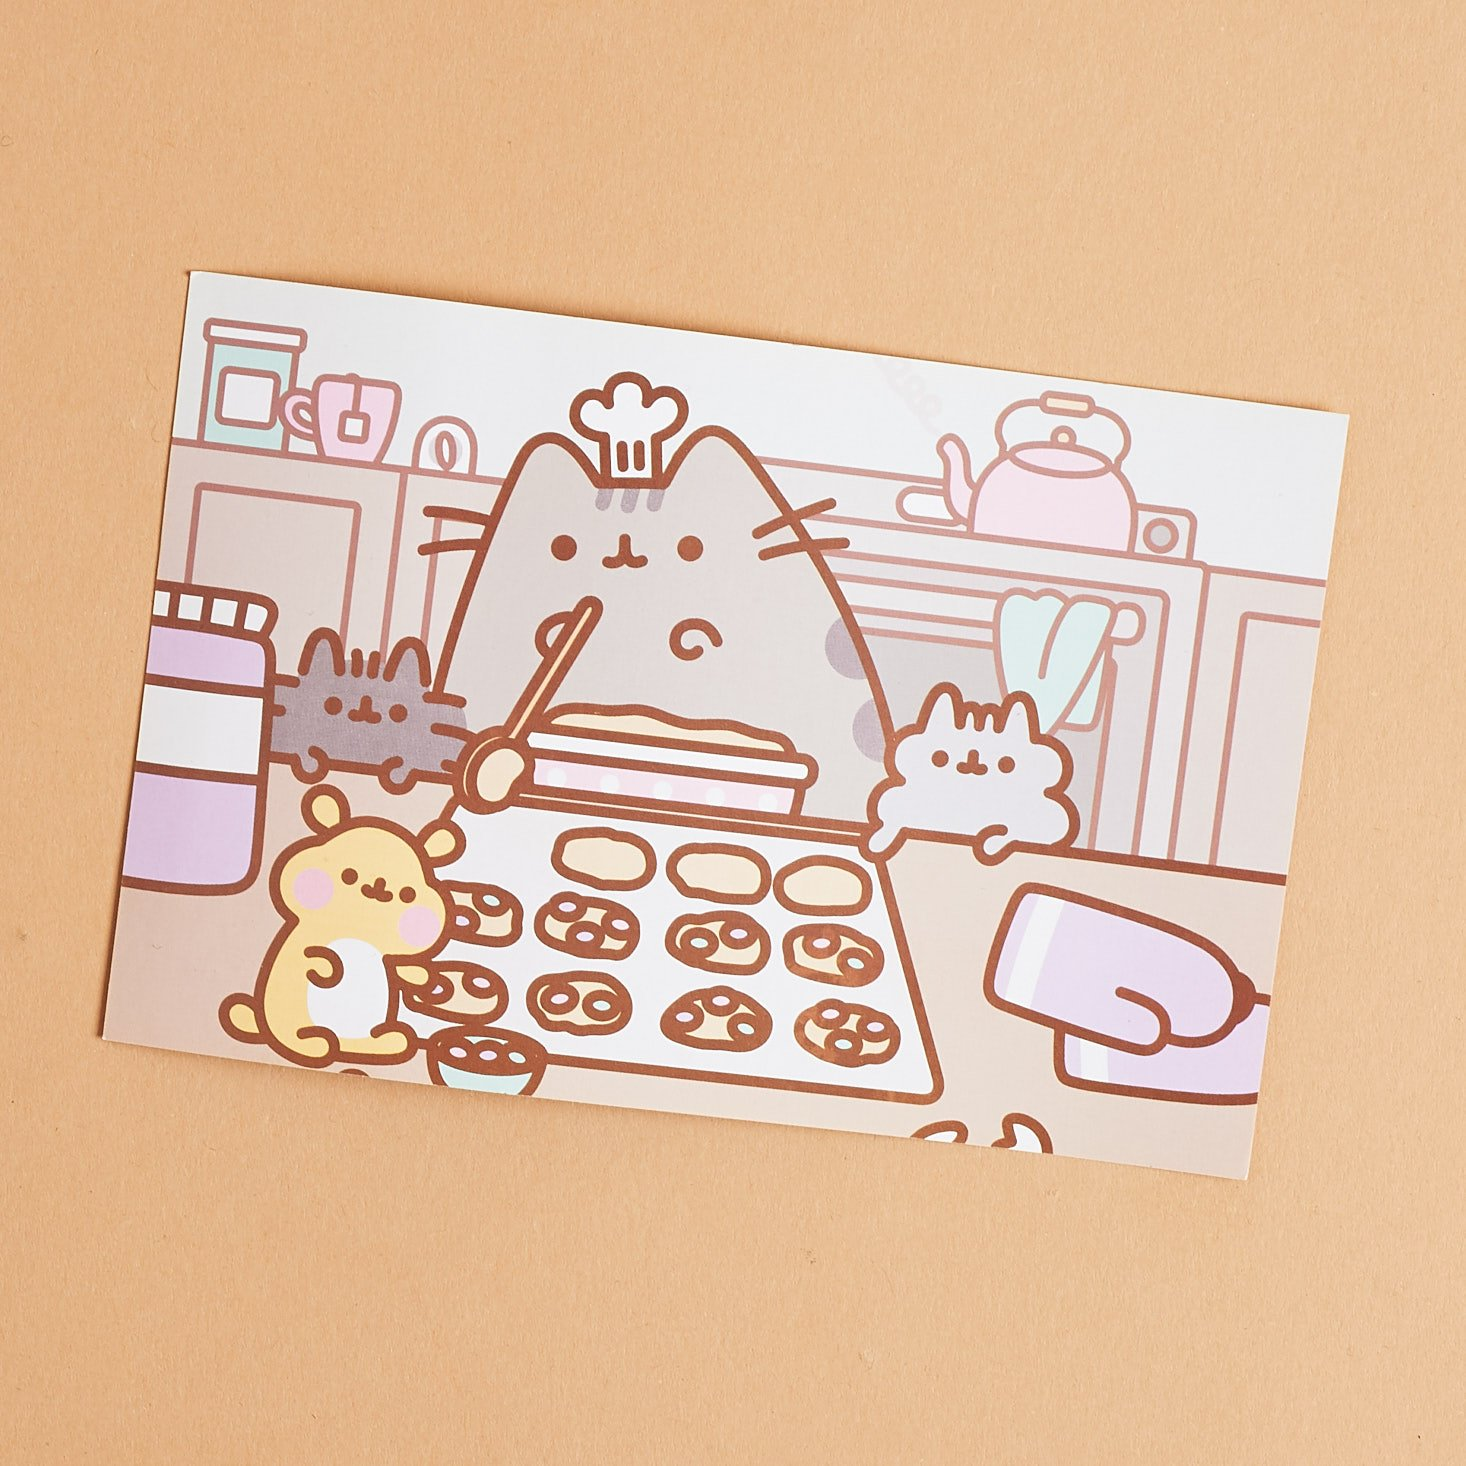 Baker Pusheen illustration on front of info card